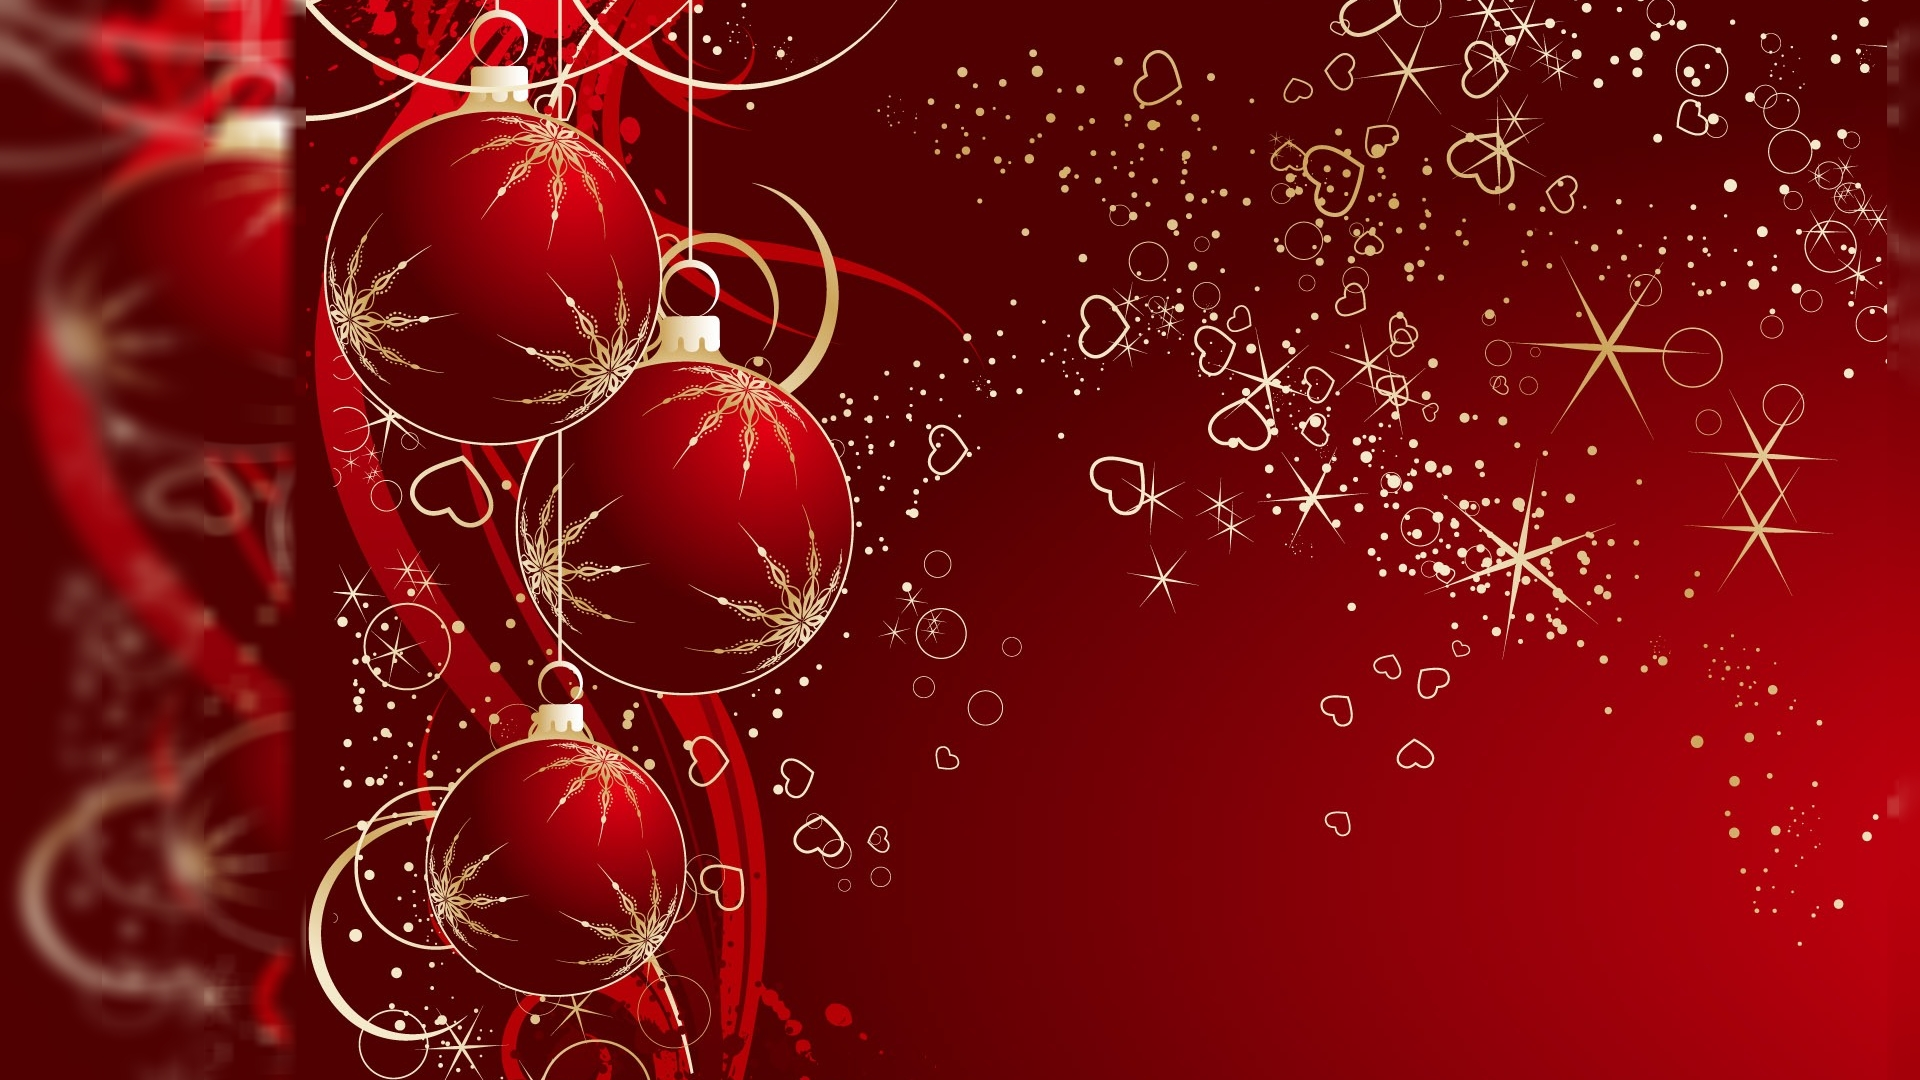 Christmas Desktop Free Theme Wallpaper